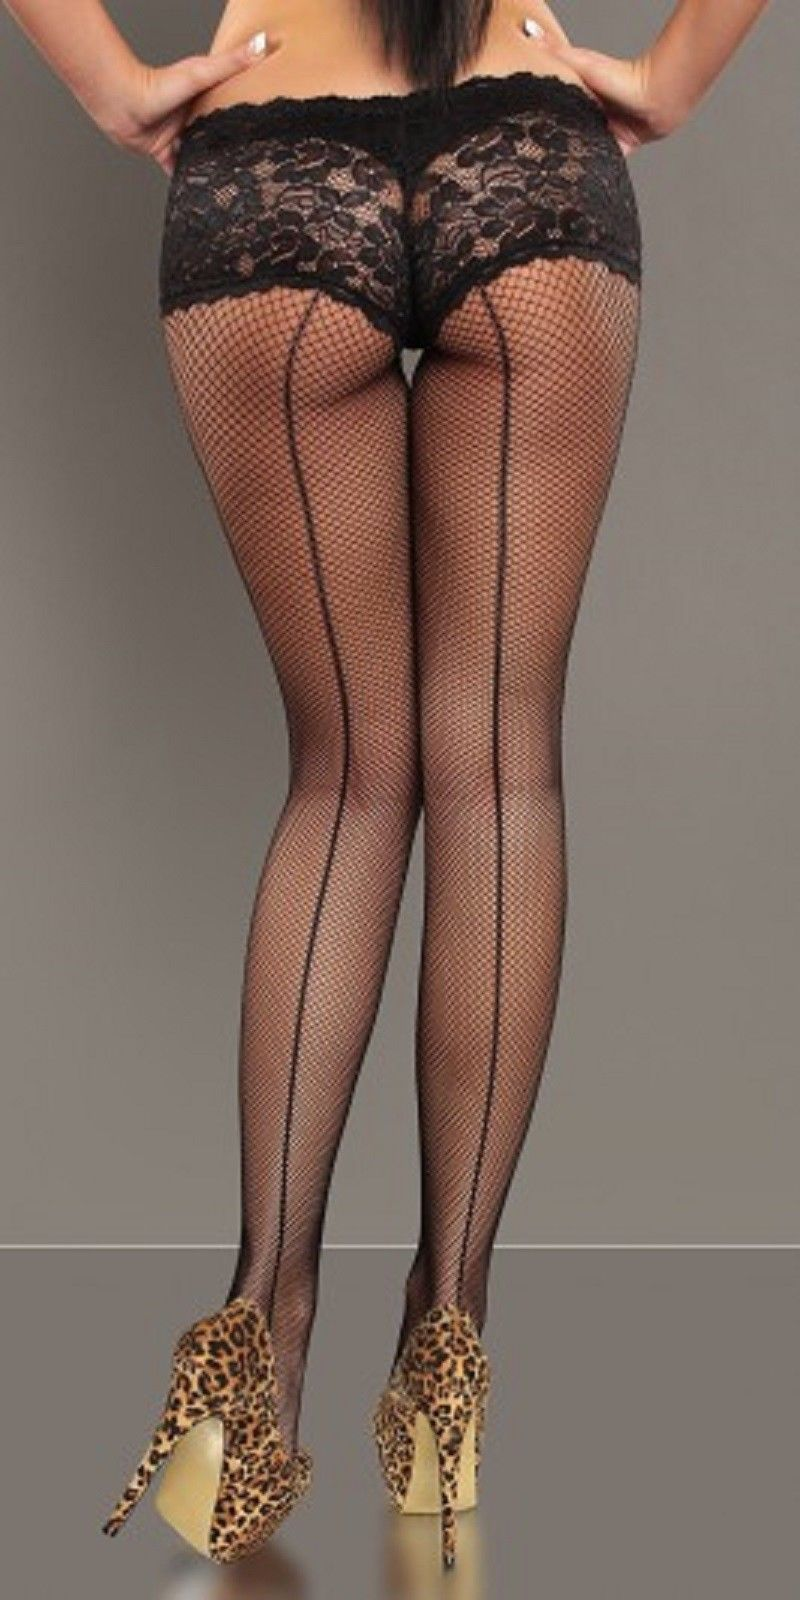 50709531085 SEXY BLACK FISHNET TIGHTS WITH BACK SEAM AND LACE KNICKERS UNDERWEAR ONE  SIZE Black fishnet tights. Backseam. Lace knickers. Stretchy.